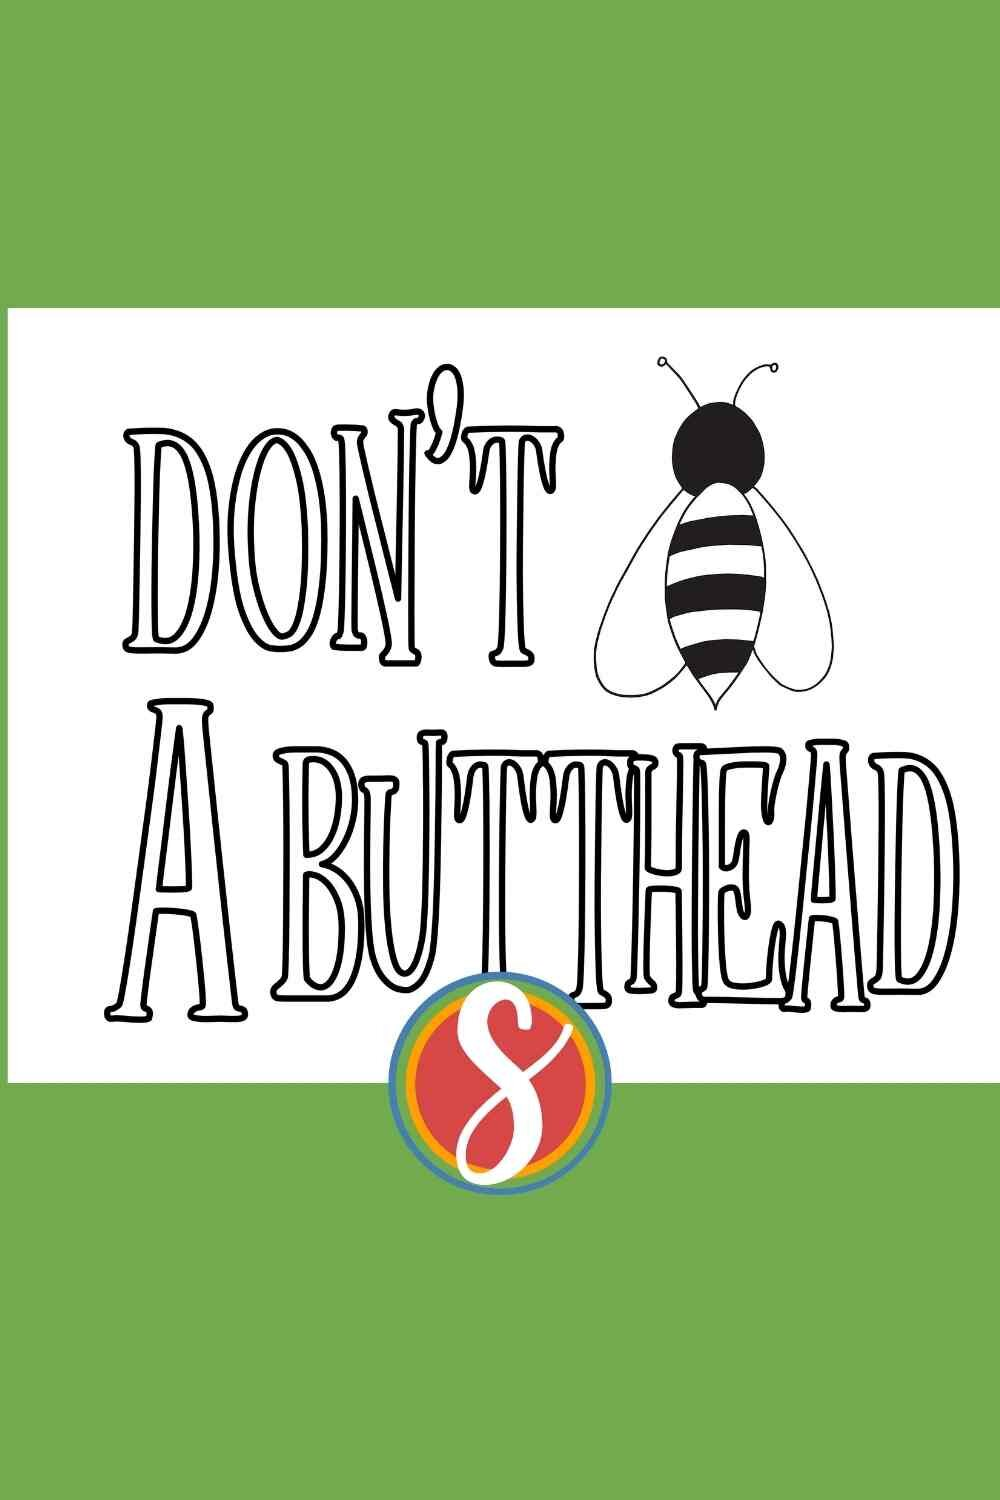 Don't BEE a butthead - a free bee coloring page from Stevie Doodles - print and color this bee coloring sheet today and find more free bee coloring pages too. I hope you love my bee pages!